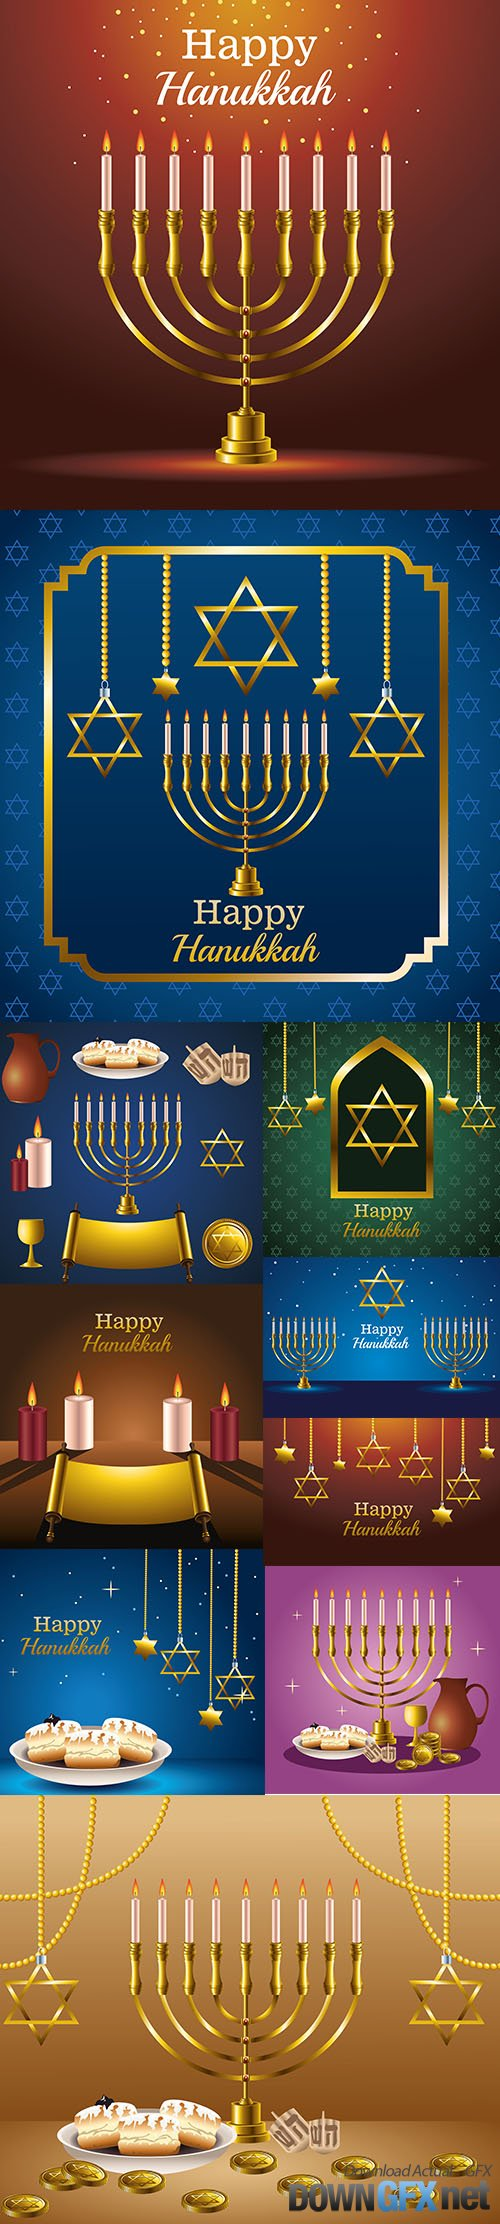 Happy hanukkah celebration card with golden stars hanging vector illustration